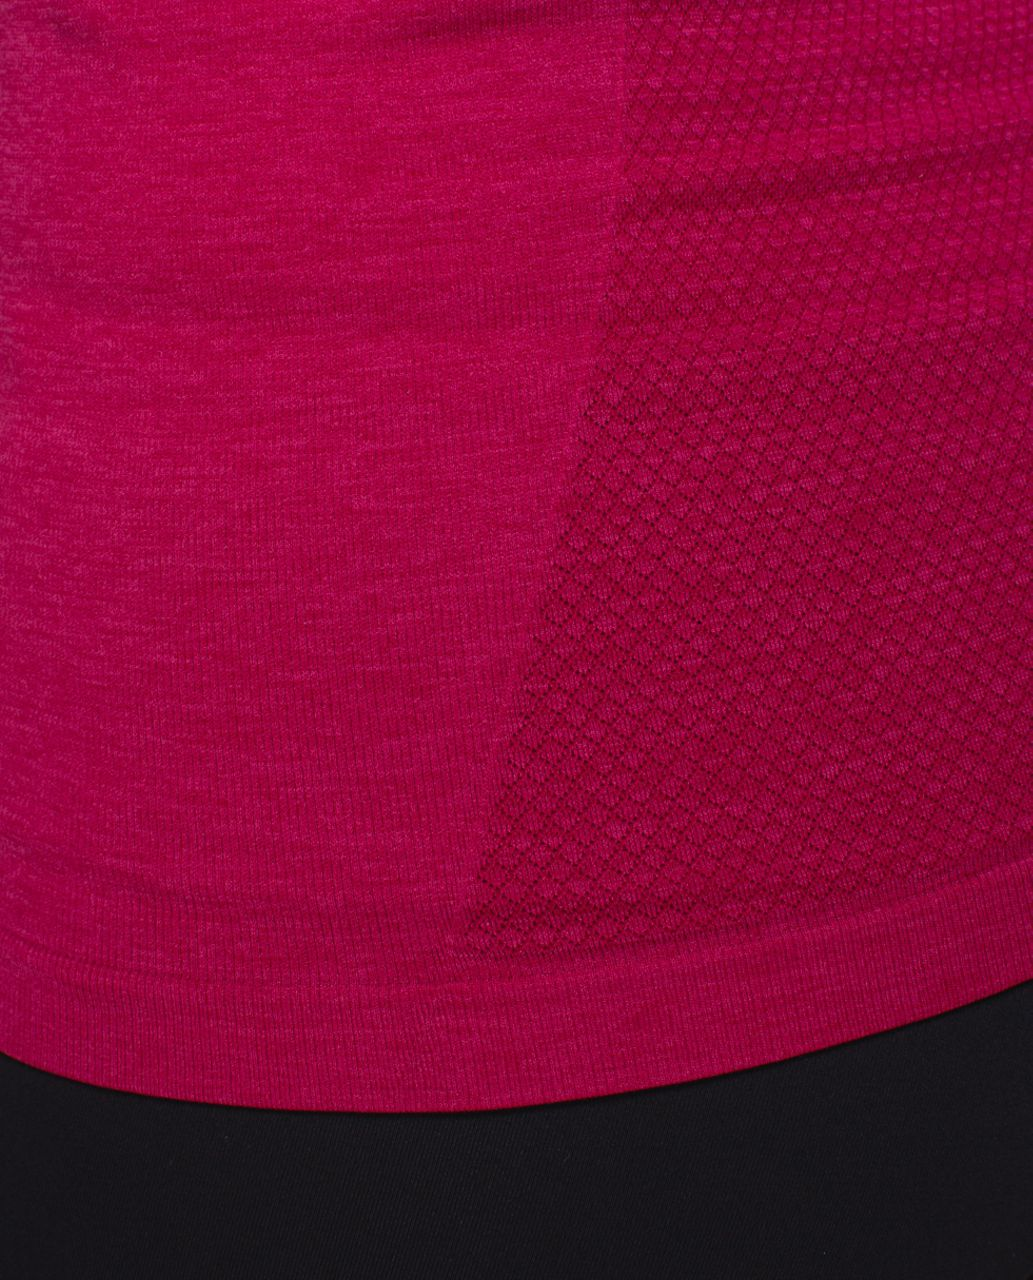 Lululemon Ebb & Flow Racerback Tank - Heathered Bumble Berry / Heathered Inkwell